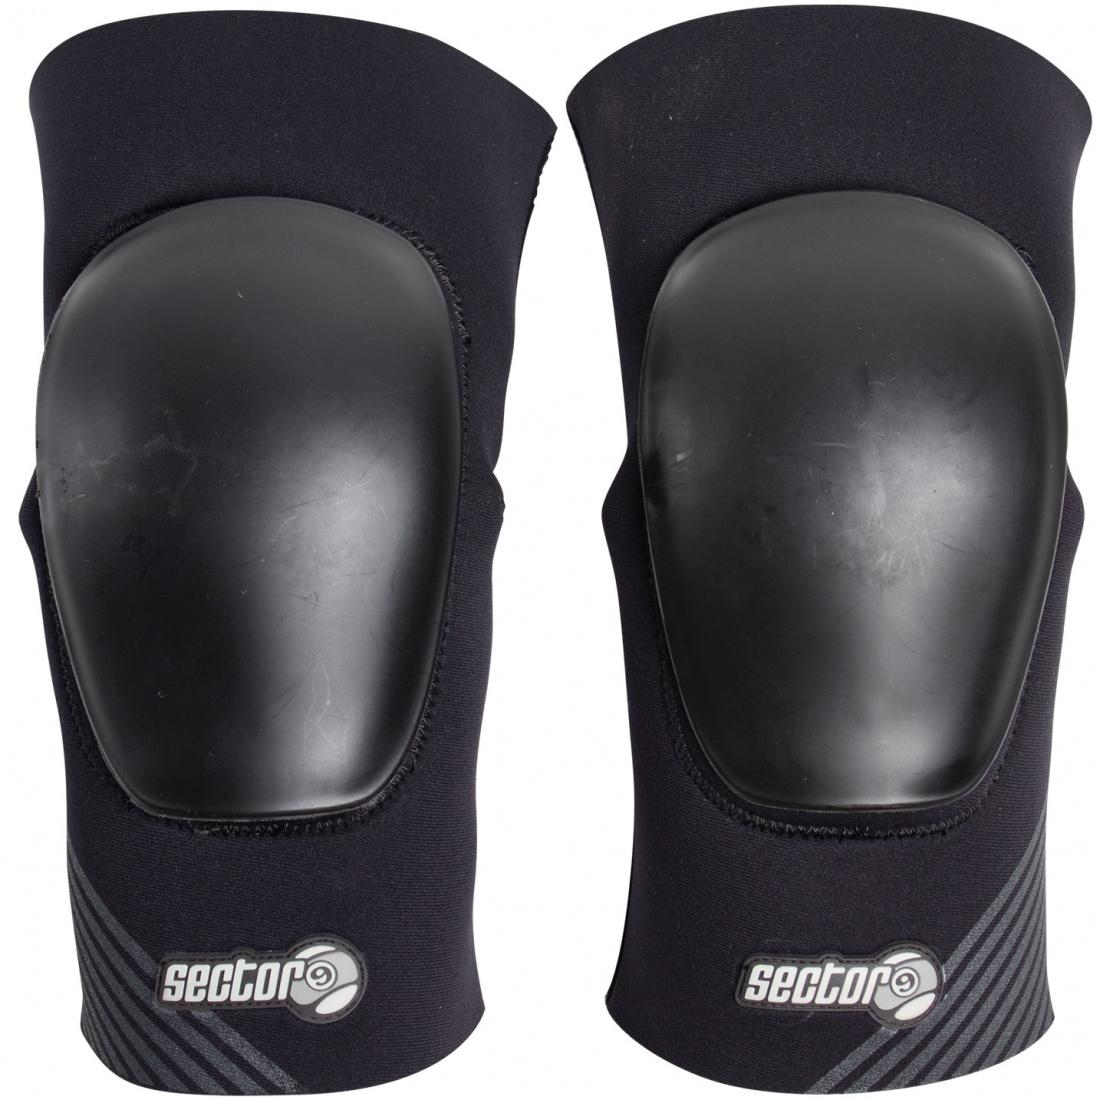 Защита коленей Sector9 Gasket Knee Pads от Board Shop №1